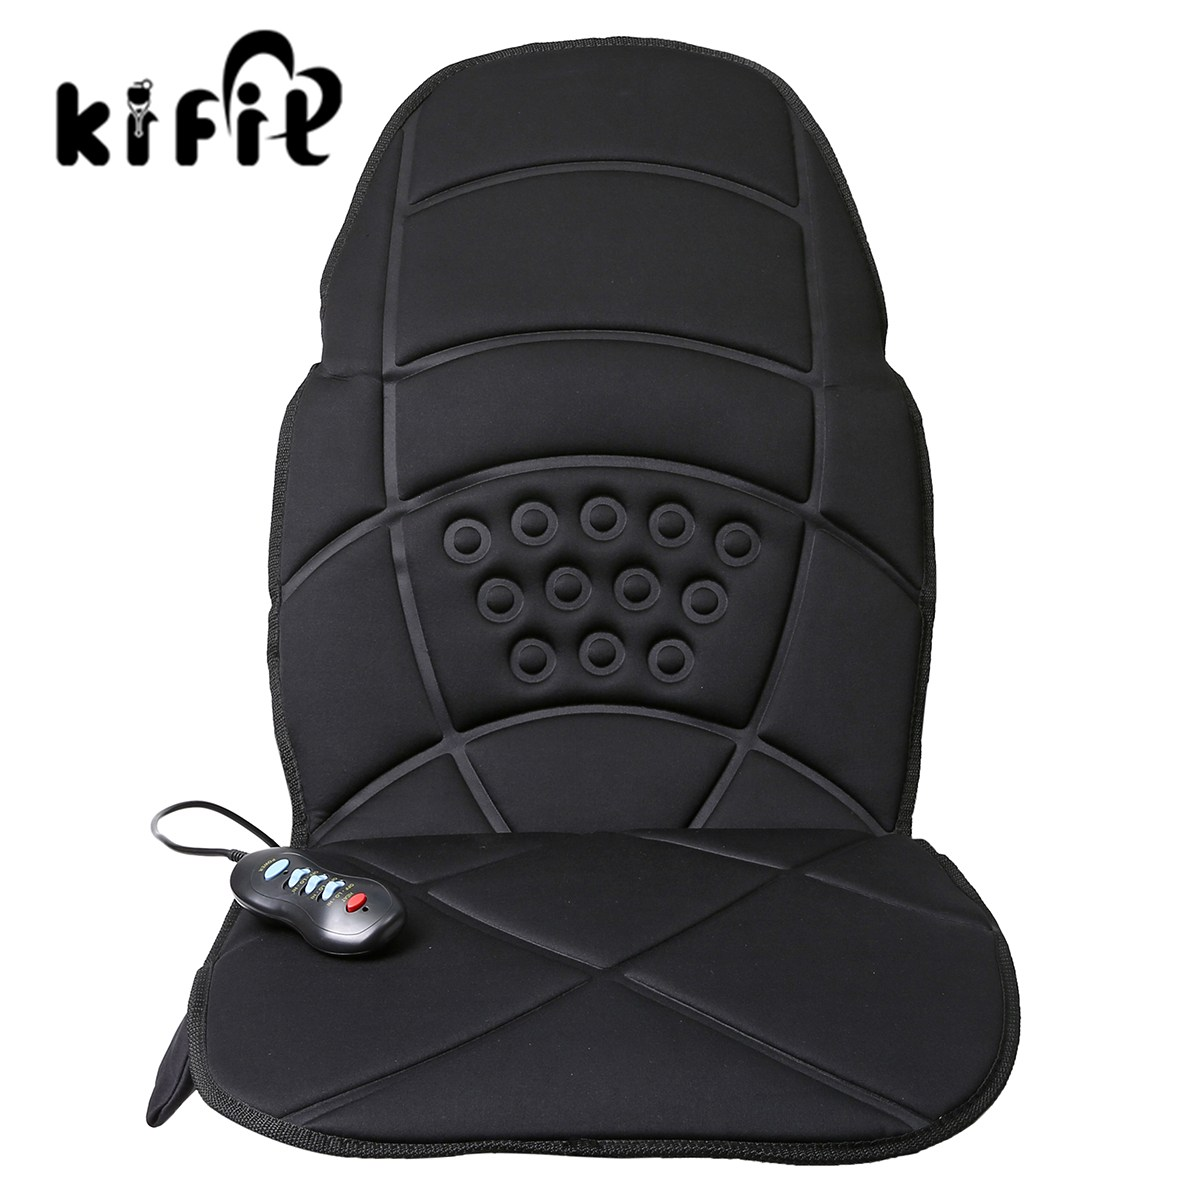 KIFIT Practical Heated Back Massage Chair Cushion Massager Car Seat Home Pad Pain Lumbar Neck Health Care Tool new car seat office chair massage back lumbar support mesh ventilate cushion pad black high big size